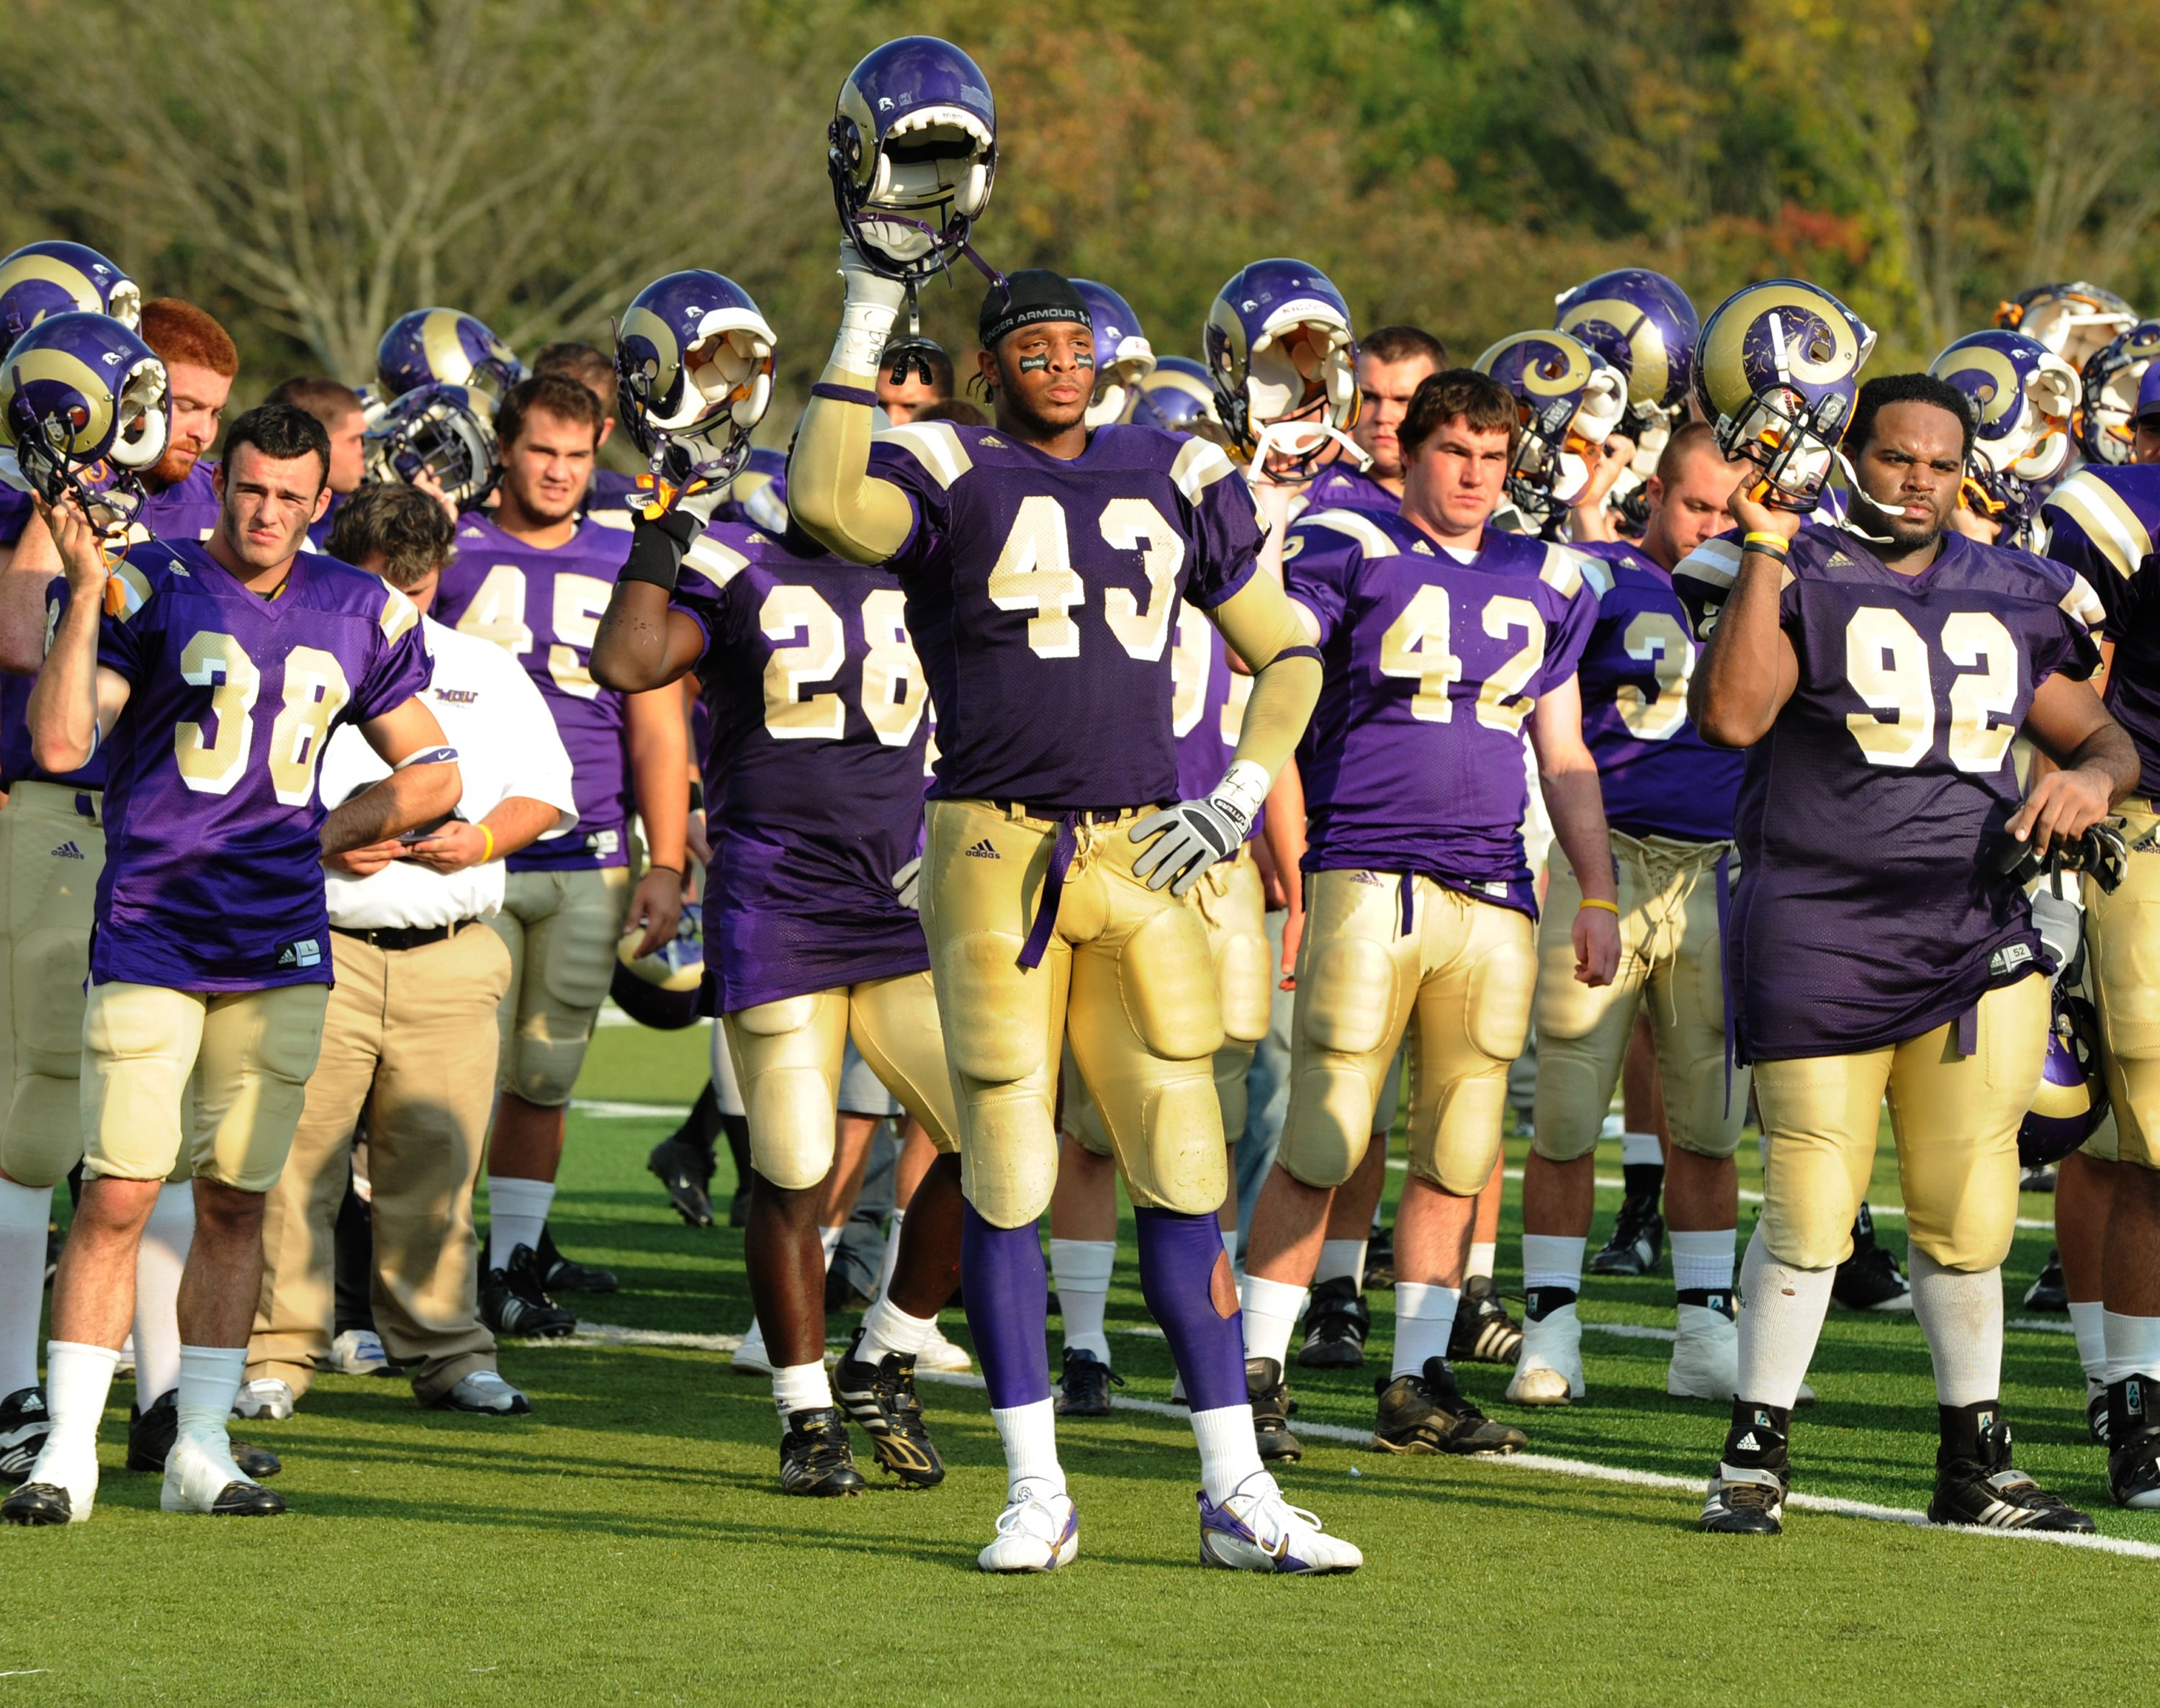 Proud To Be Rams Wcu Univserity West Chester University Chester University Rams Football